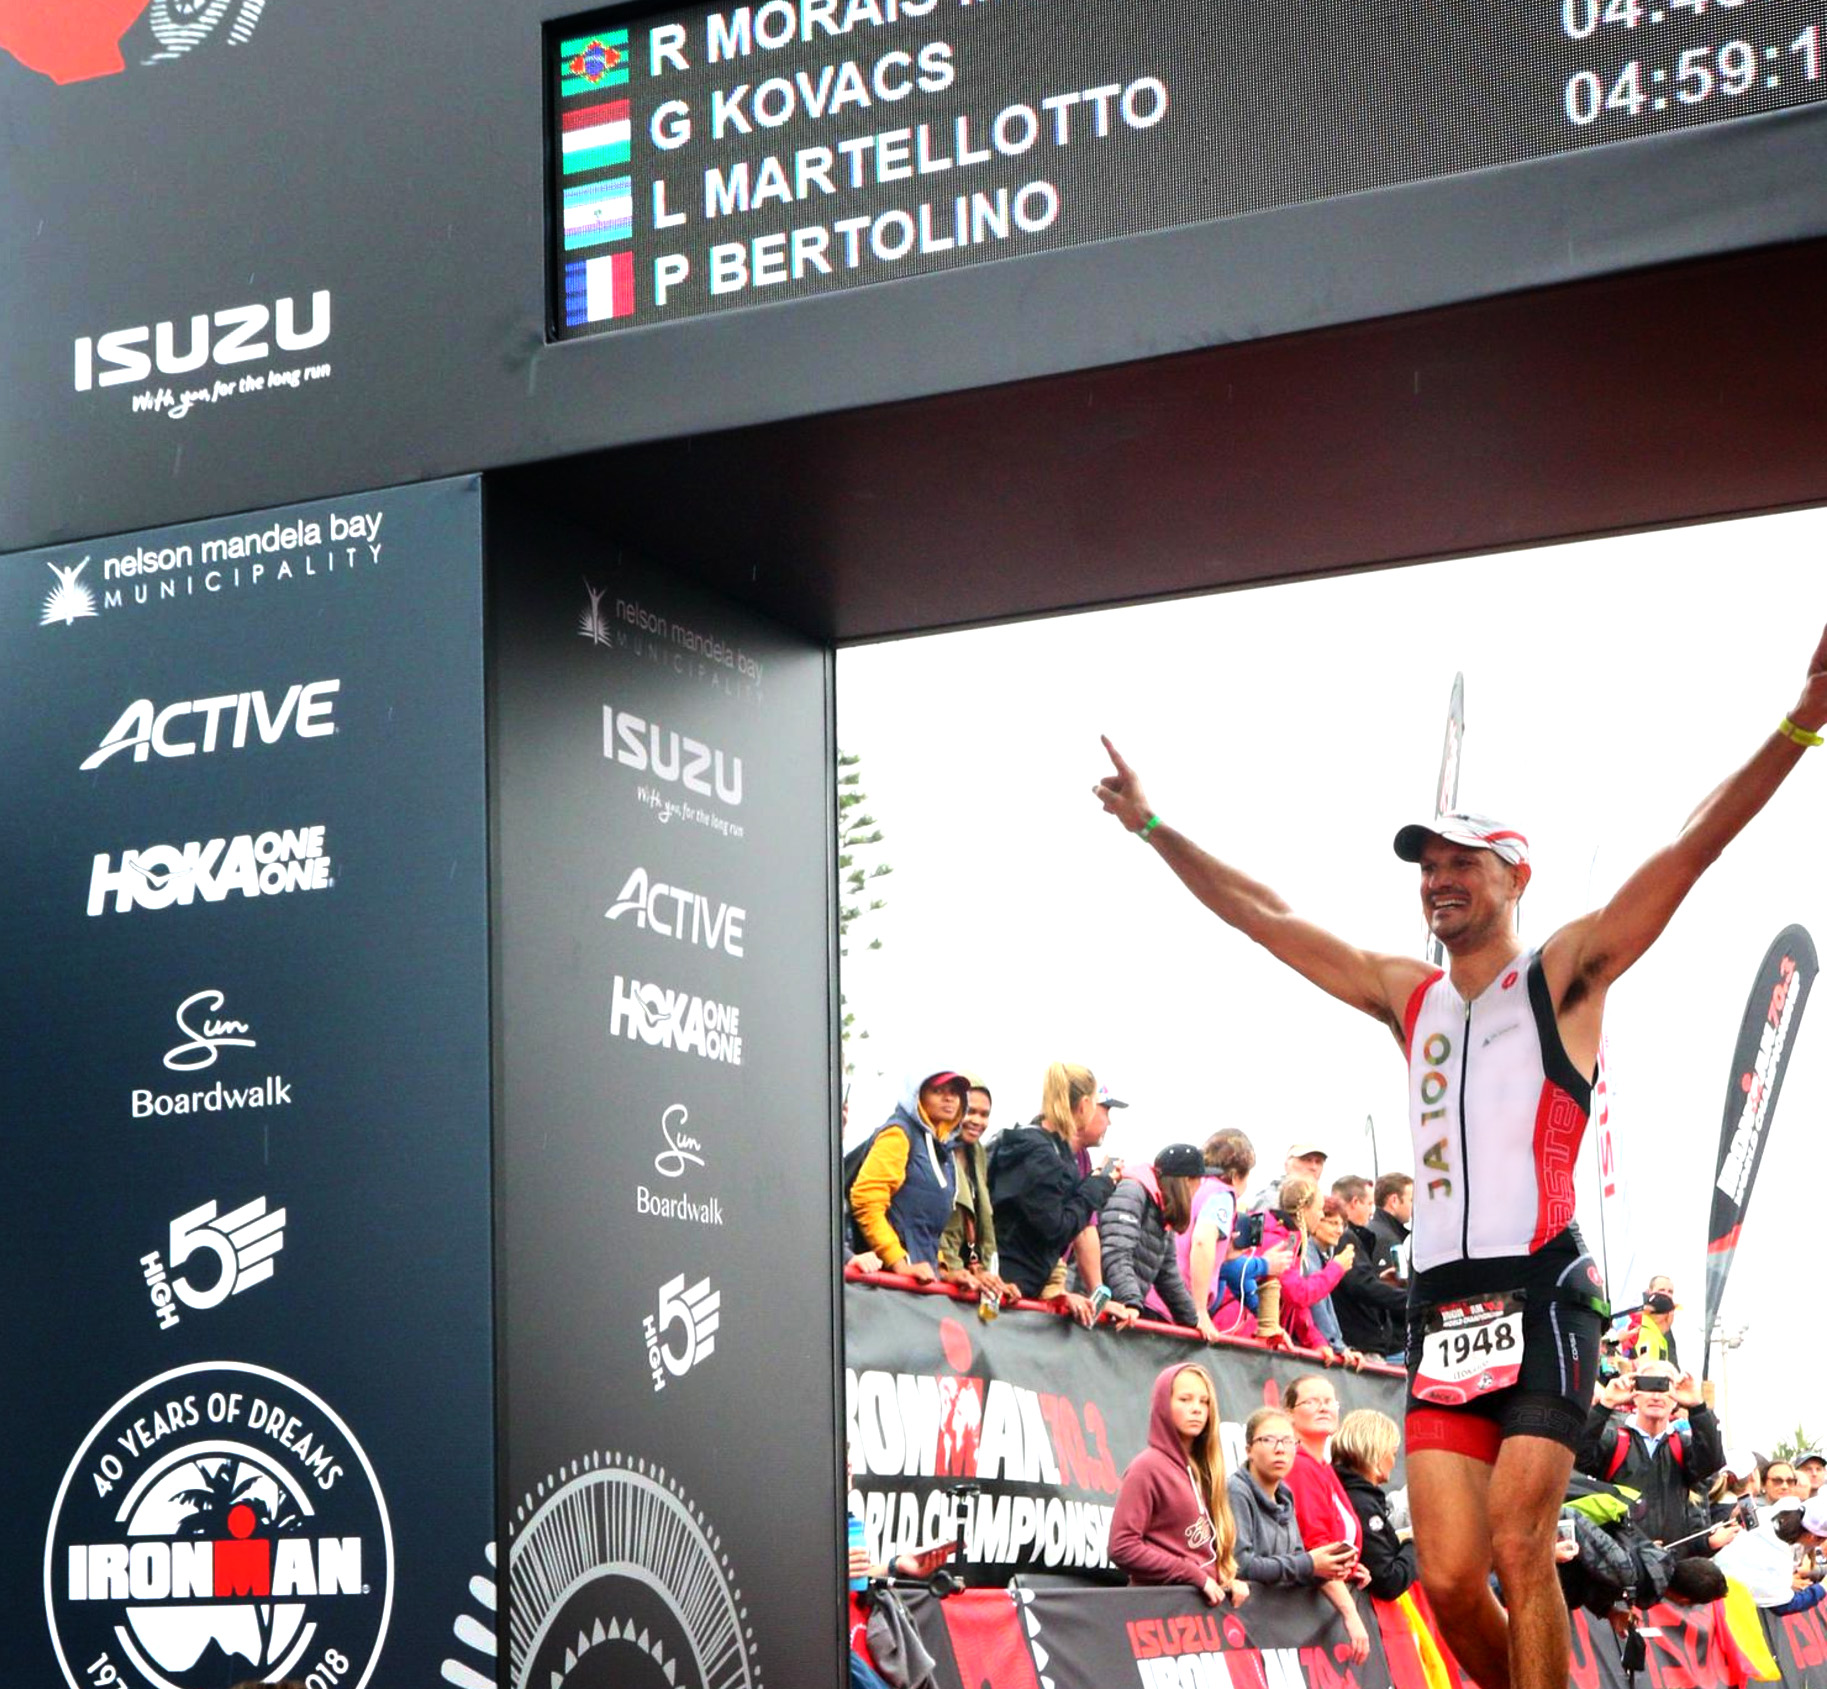 Completing my second Ironman 70.3 World Championship in Nelson Mandela Bay (South Africa)